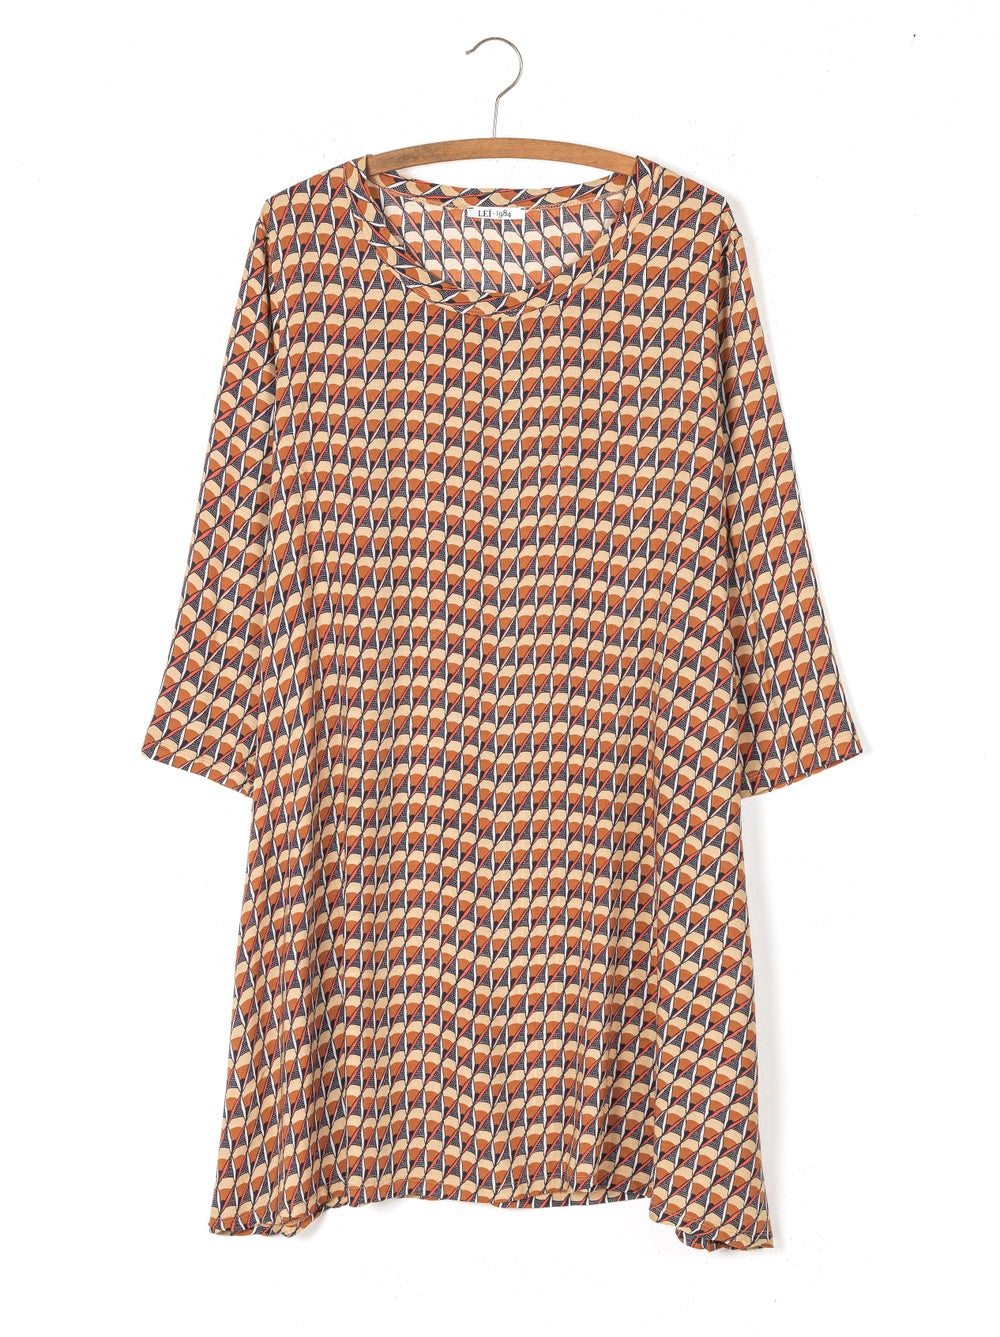 Image of Robe JOELLE imprimé wax 129€ -50%